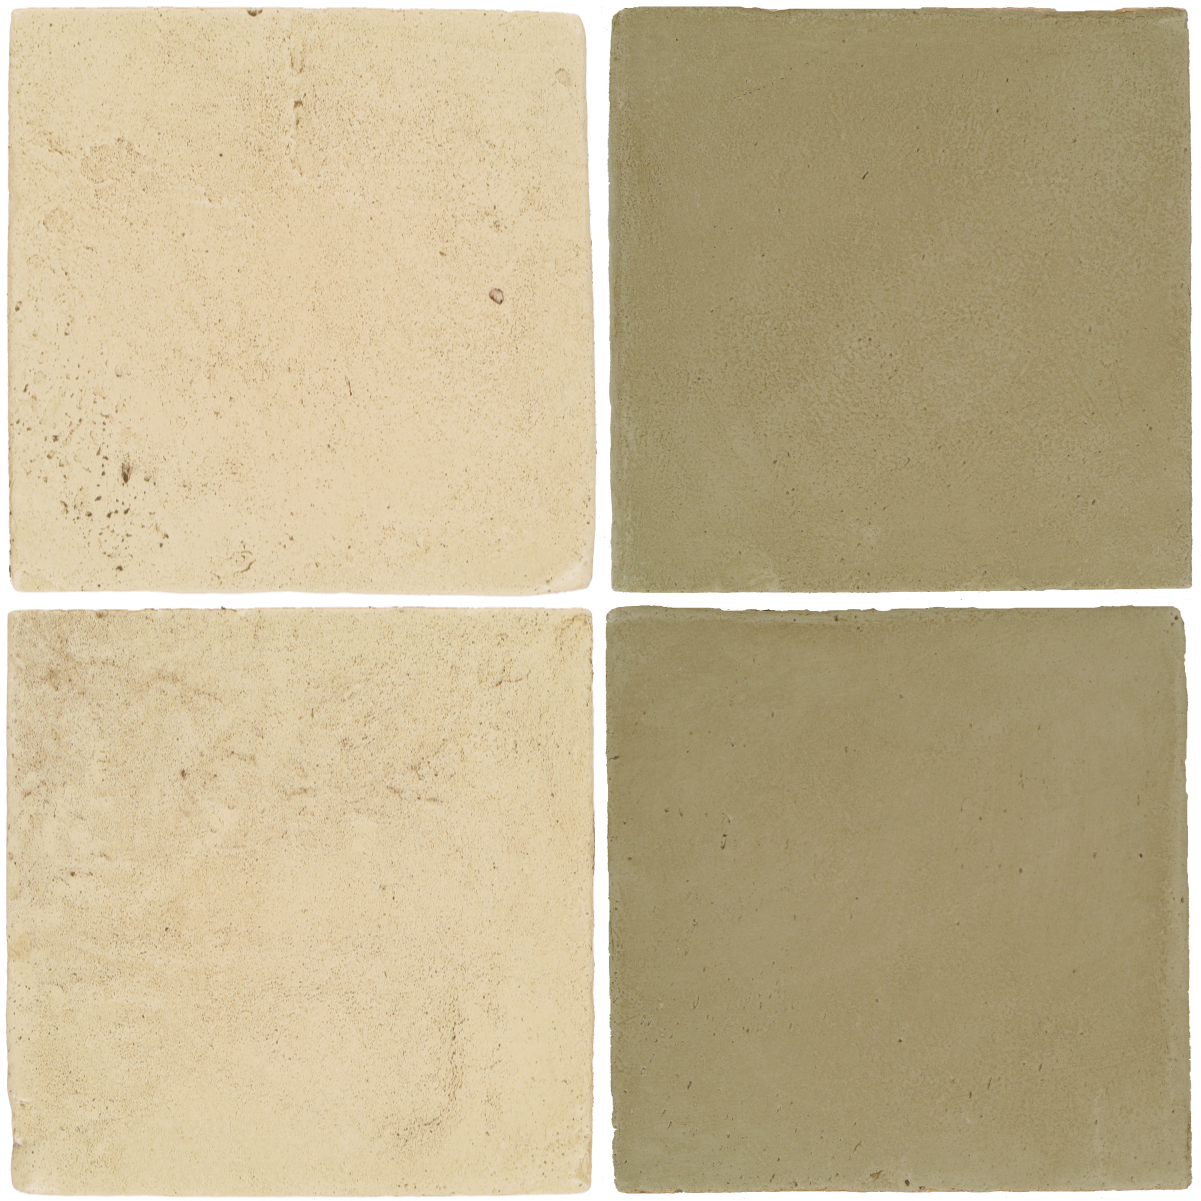 Pedralbes Antique Terracotta  2 Color Combinations  VTG-PGPW Pergamino White + OHS-PGDW Dirty W.